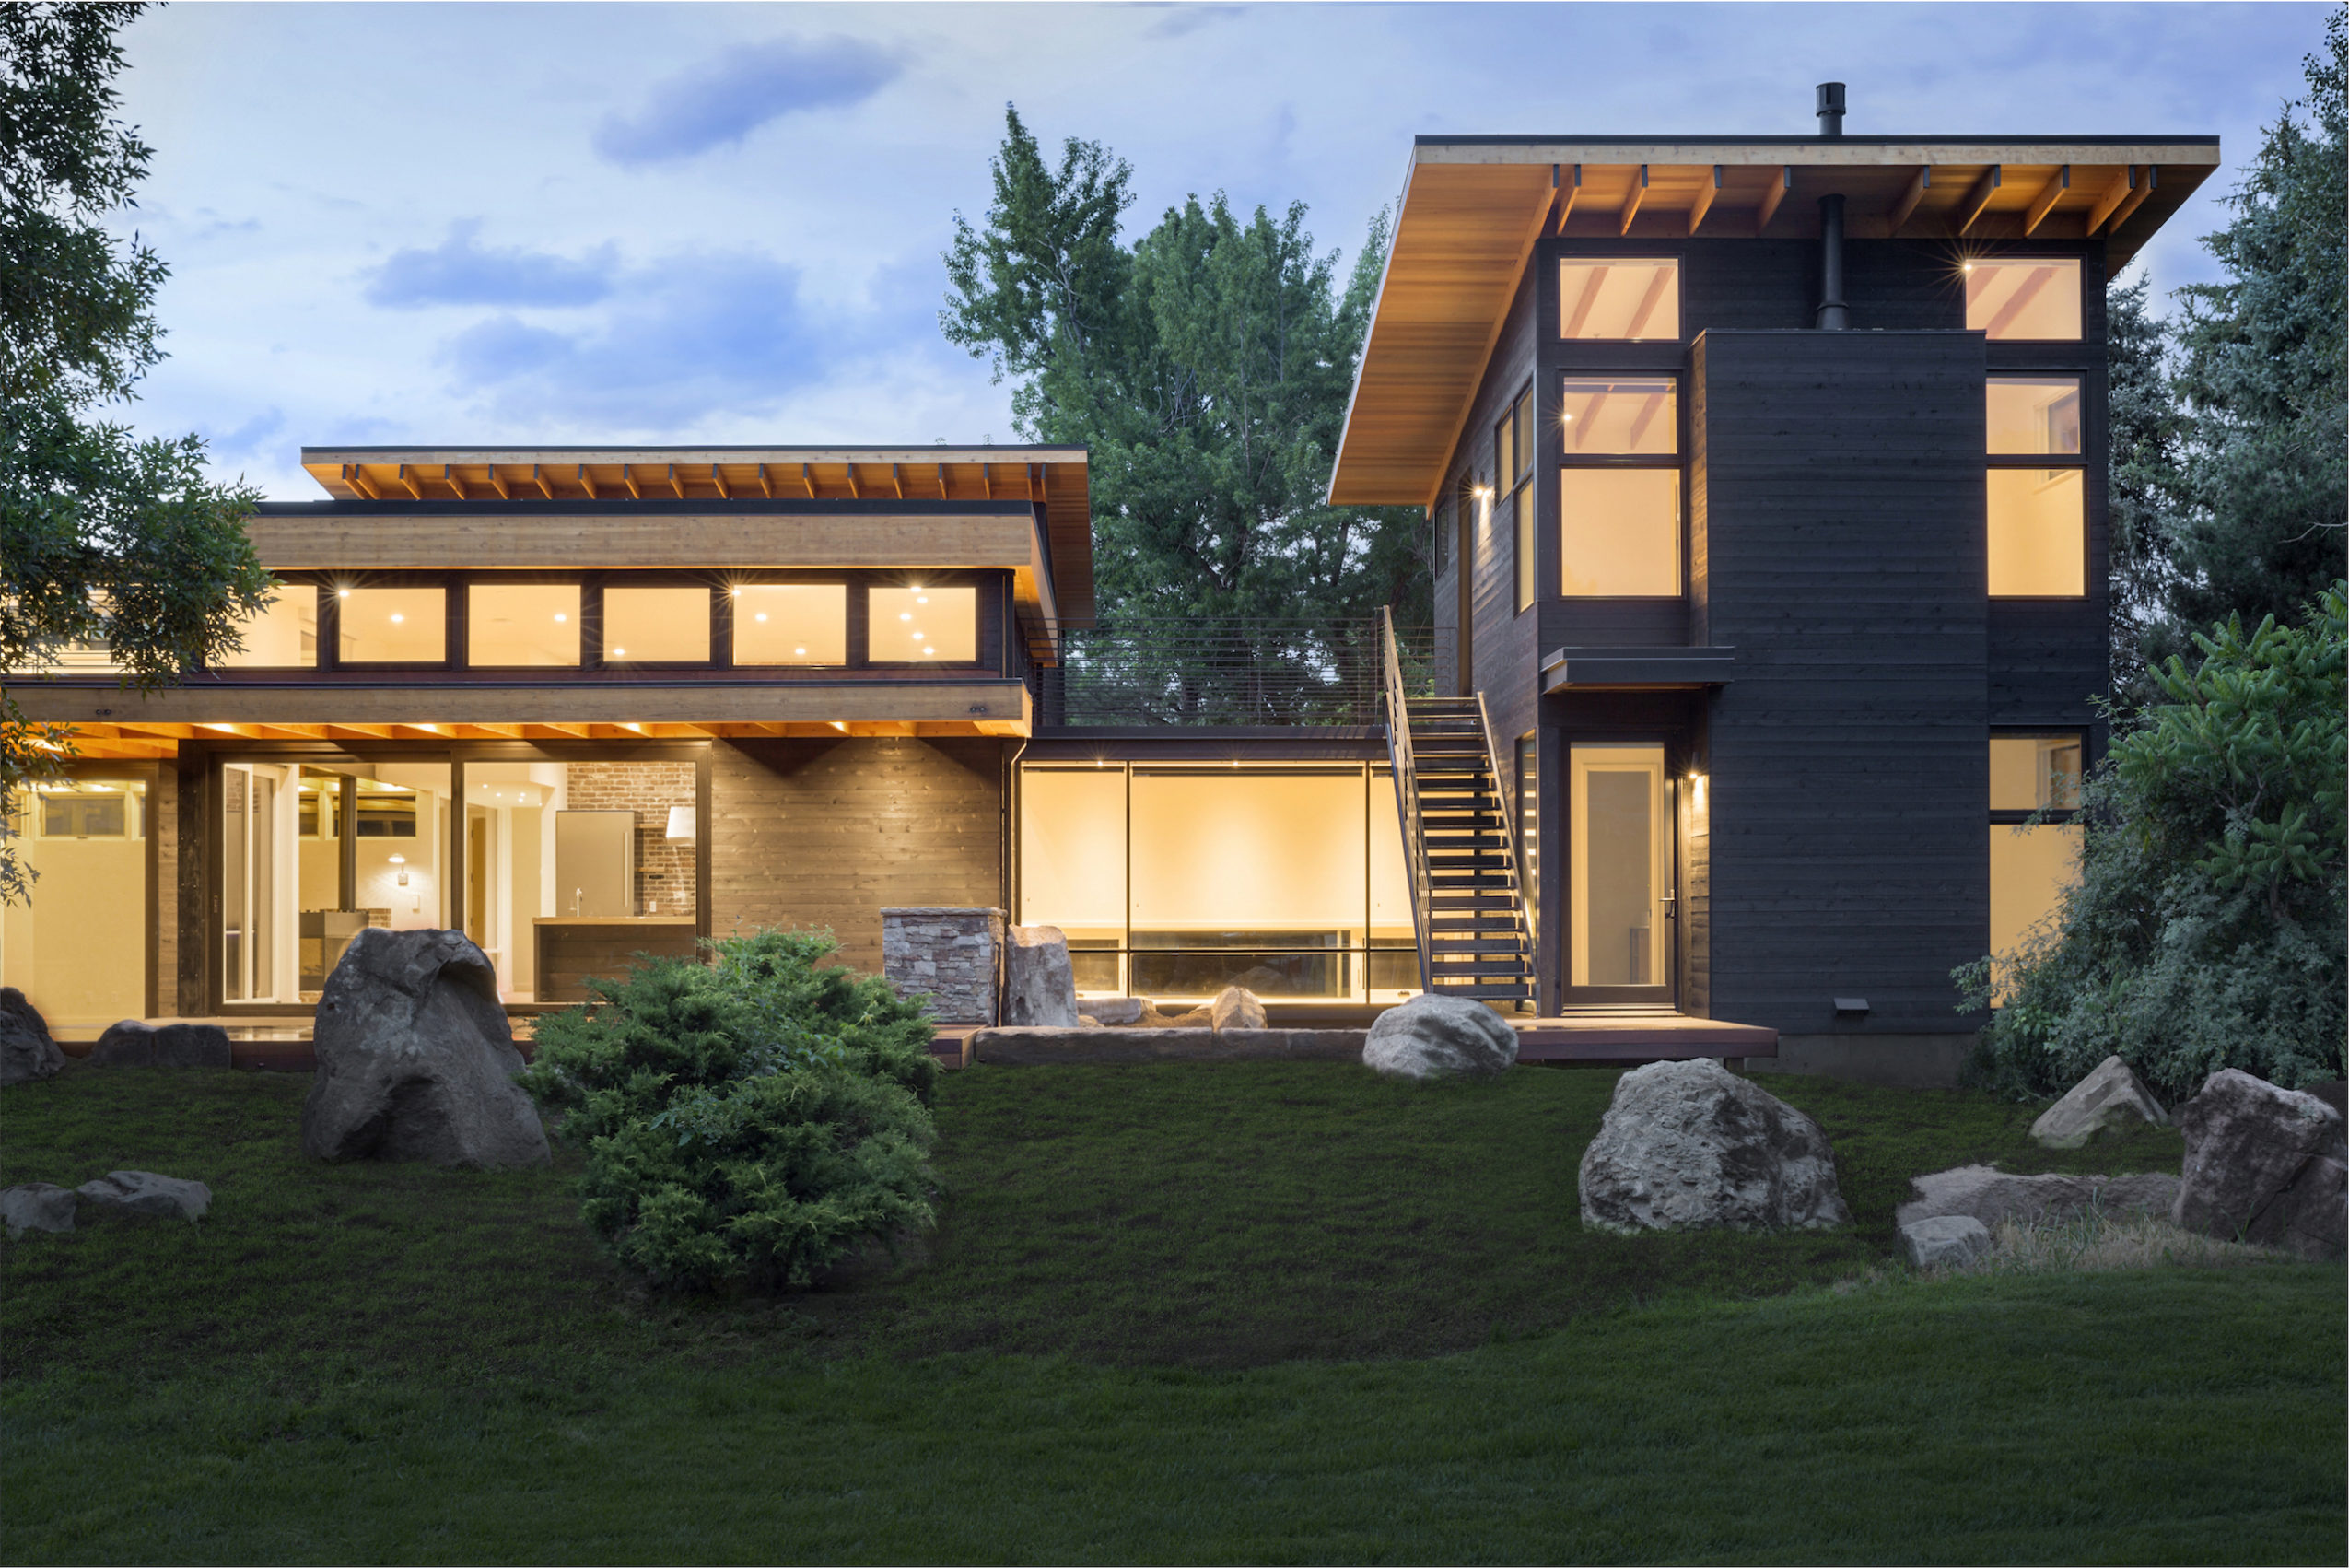 Twilight view at Inside Out House by Renée del Gaudio Architecture